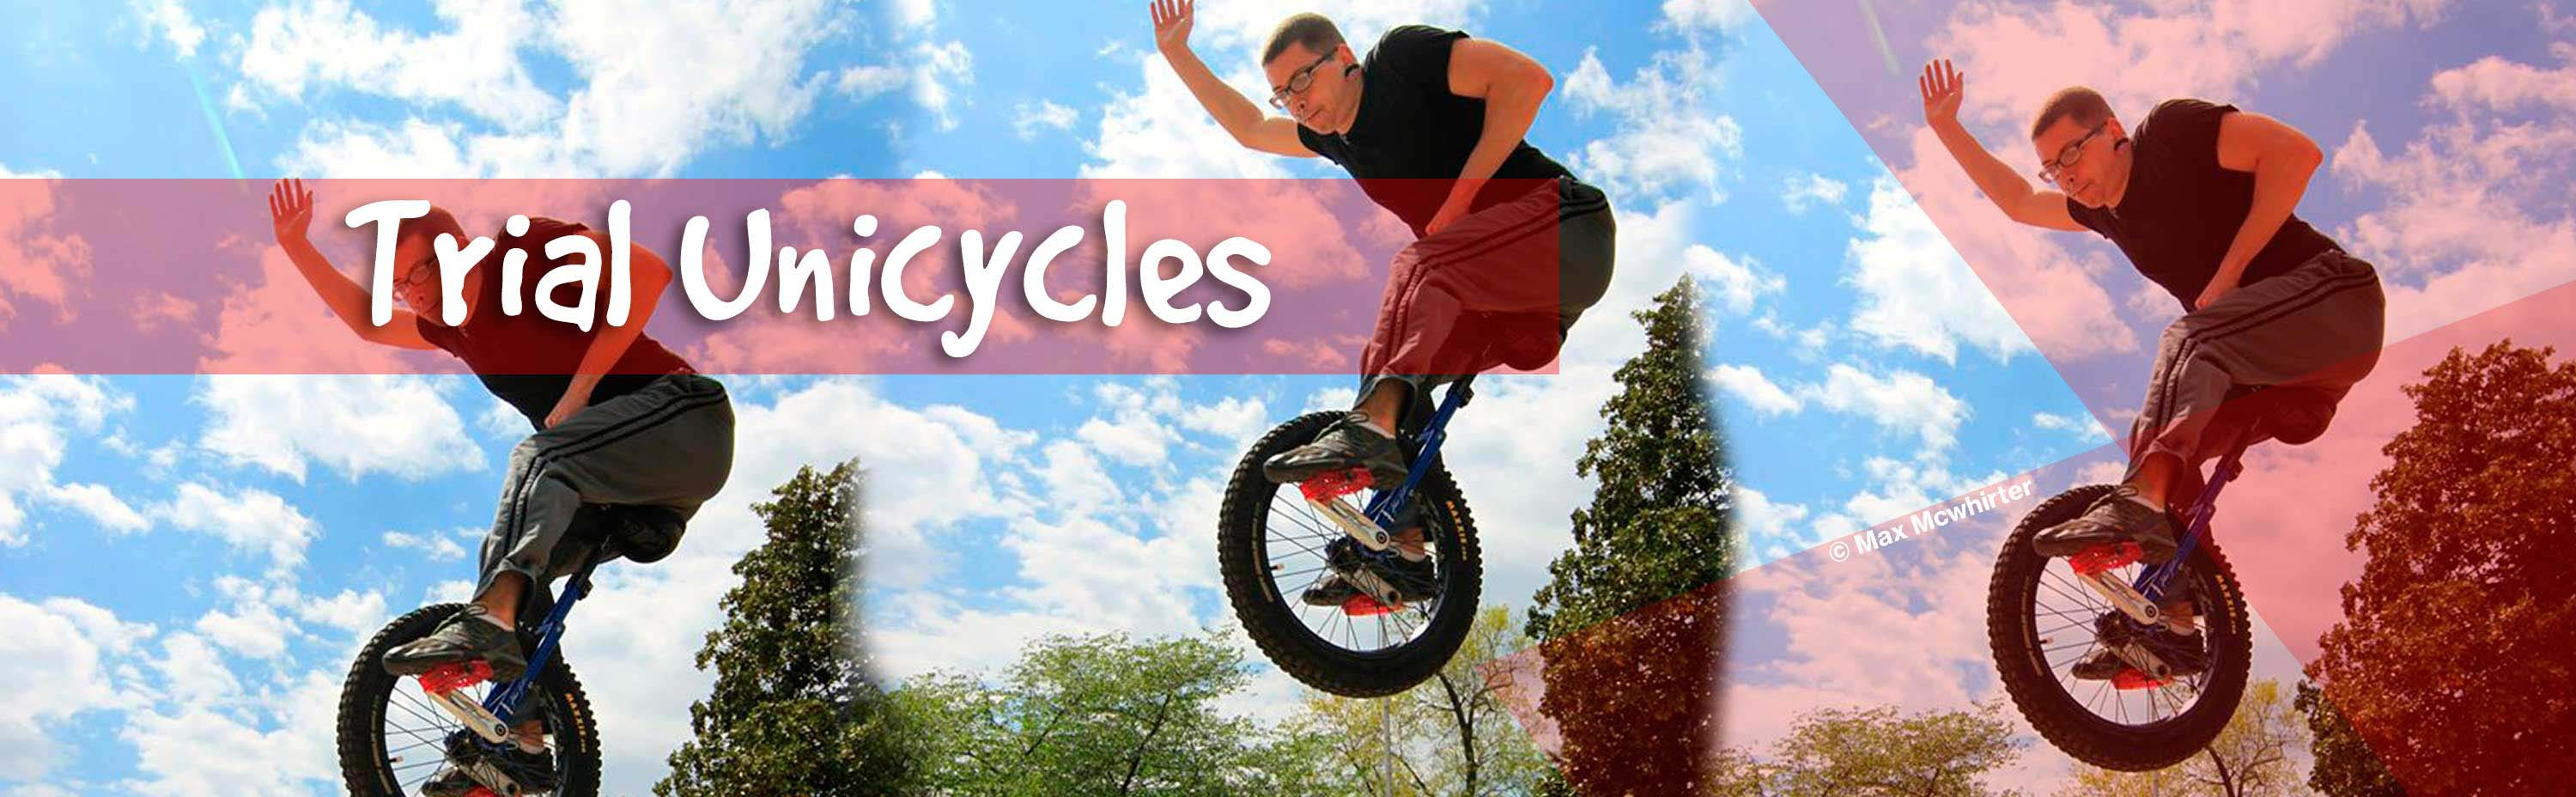 Trials Unicycles